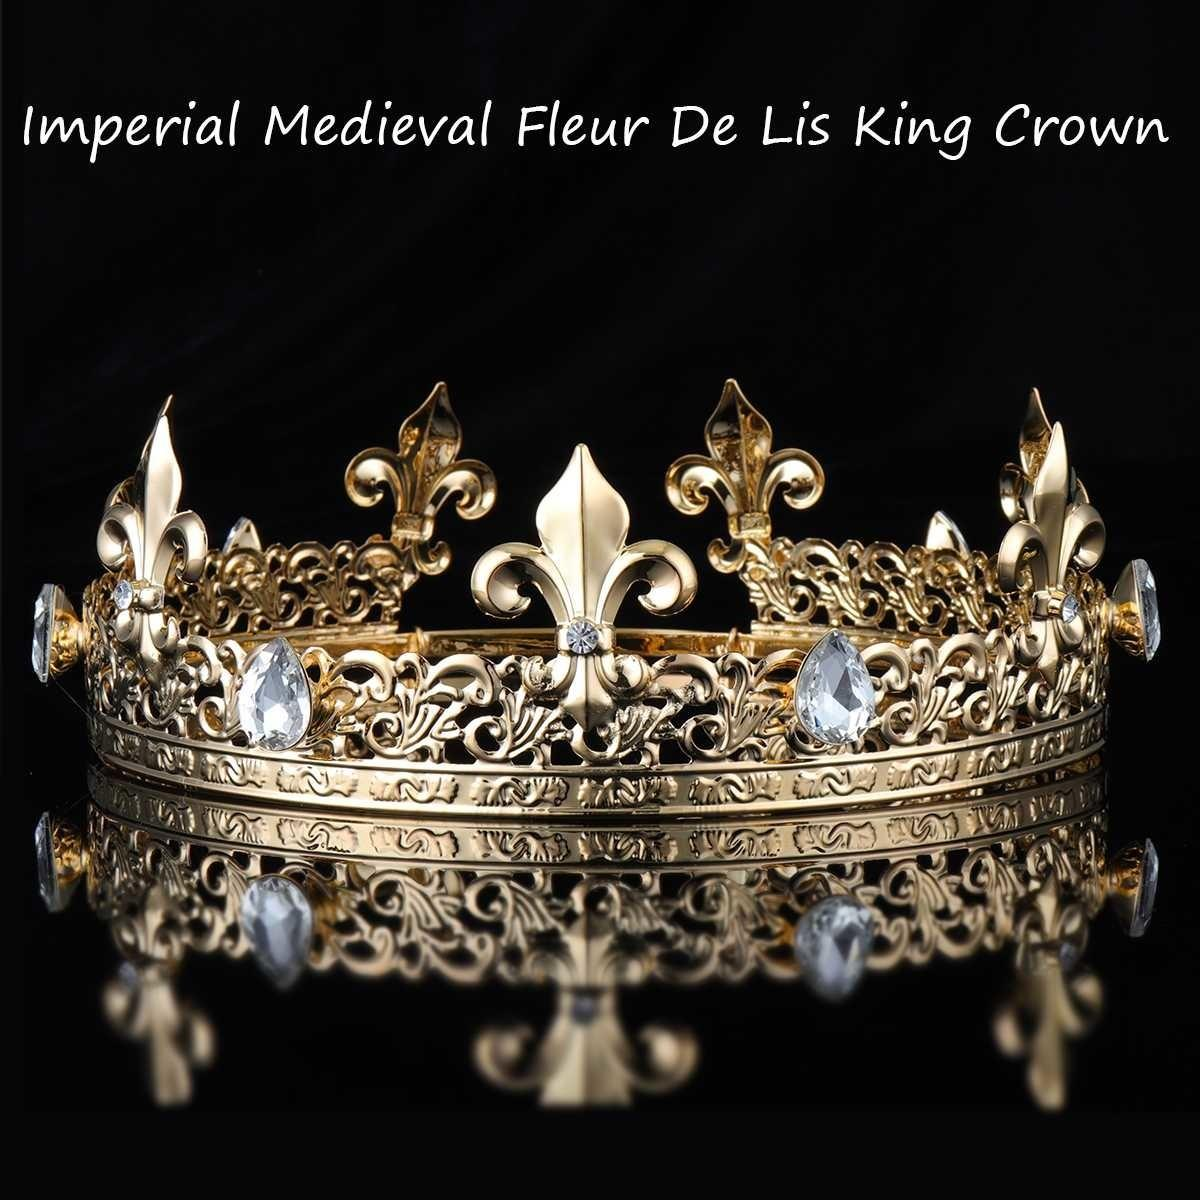 2021 Mens Imperial Medieval Gold King Full Round Crown Tiara Crystal Rhinestone Adjustable Fleur De Lis Decor Diadem Party Costumes C19022201 From Yizhan02 13 6 Dhgate Com